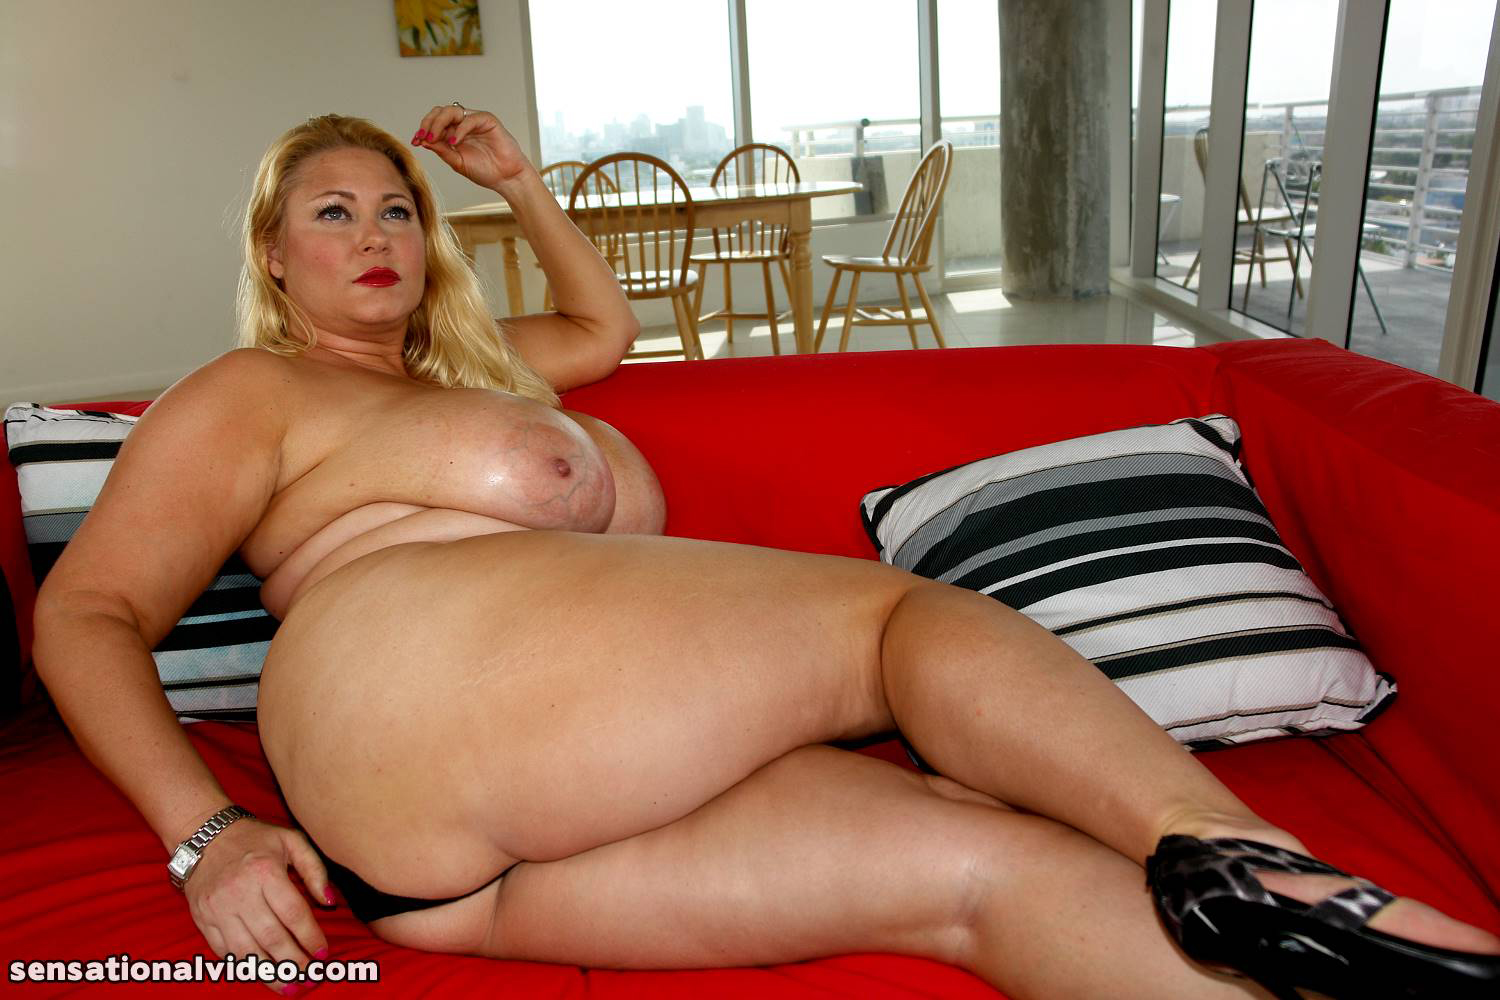 Mature Fucking Naked Fat Pussy Tits Ass Plumper Puffy Belly Boobs